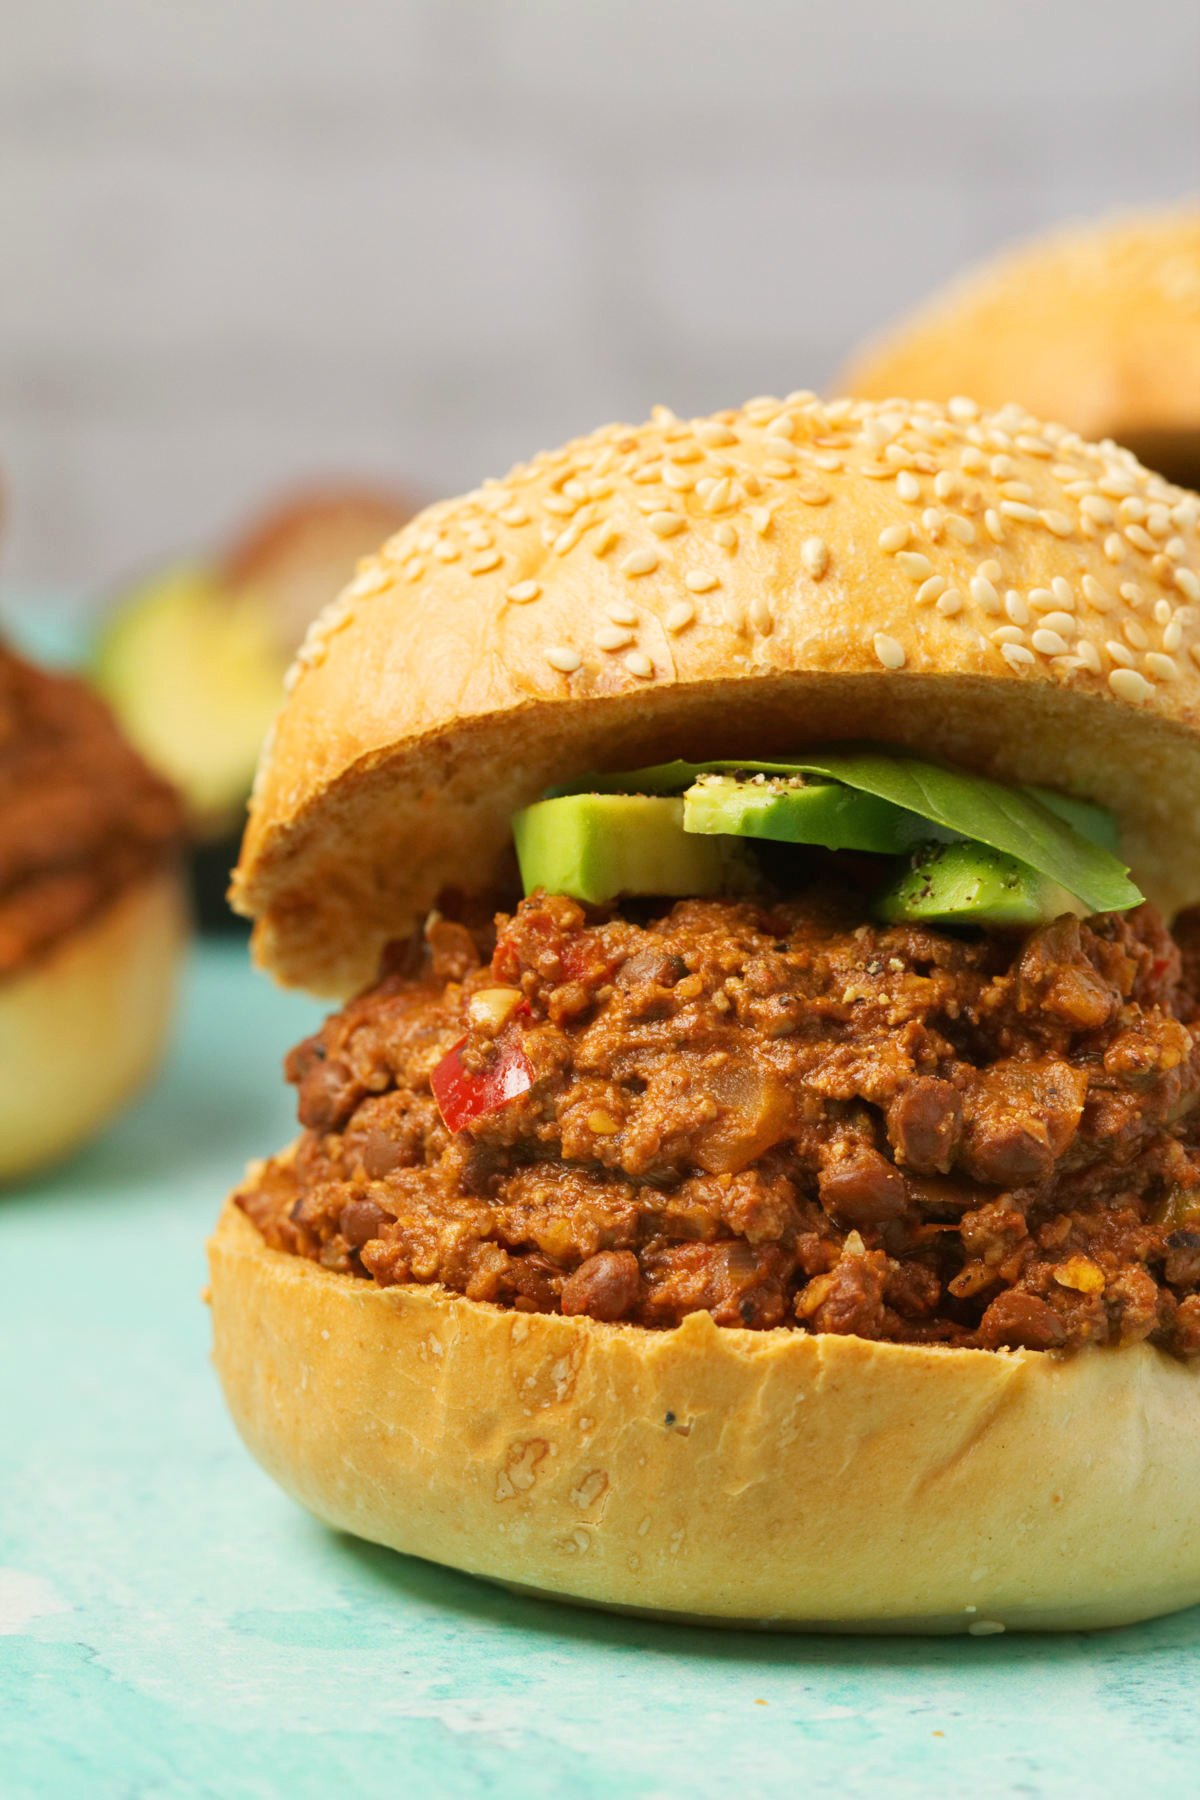 Vegan Sloppy Joe topped with sliced avocado and fresh basil.